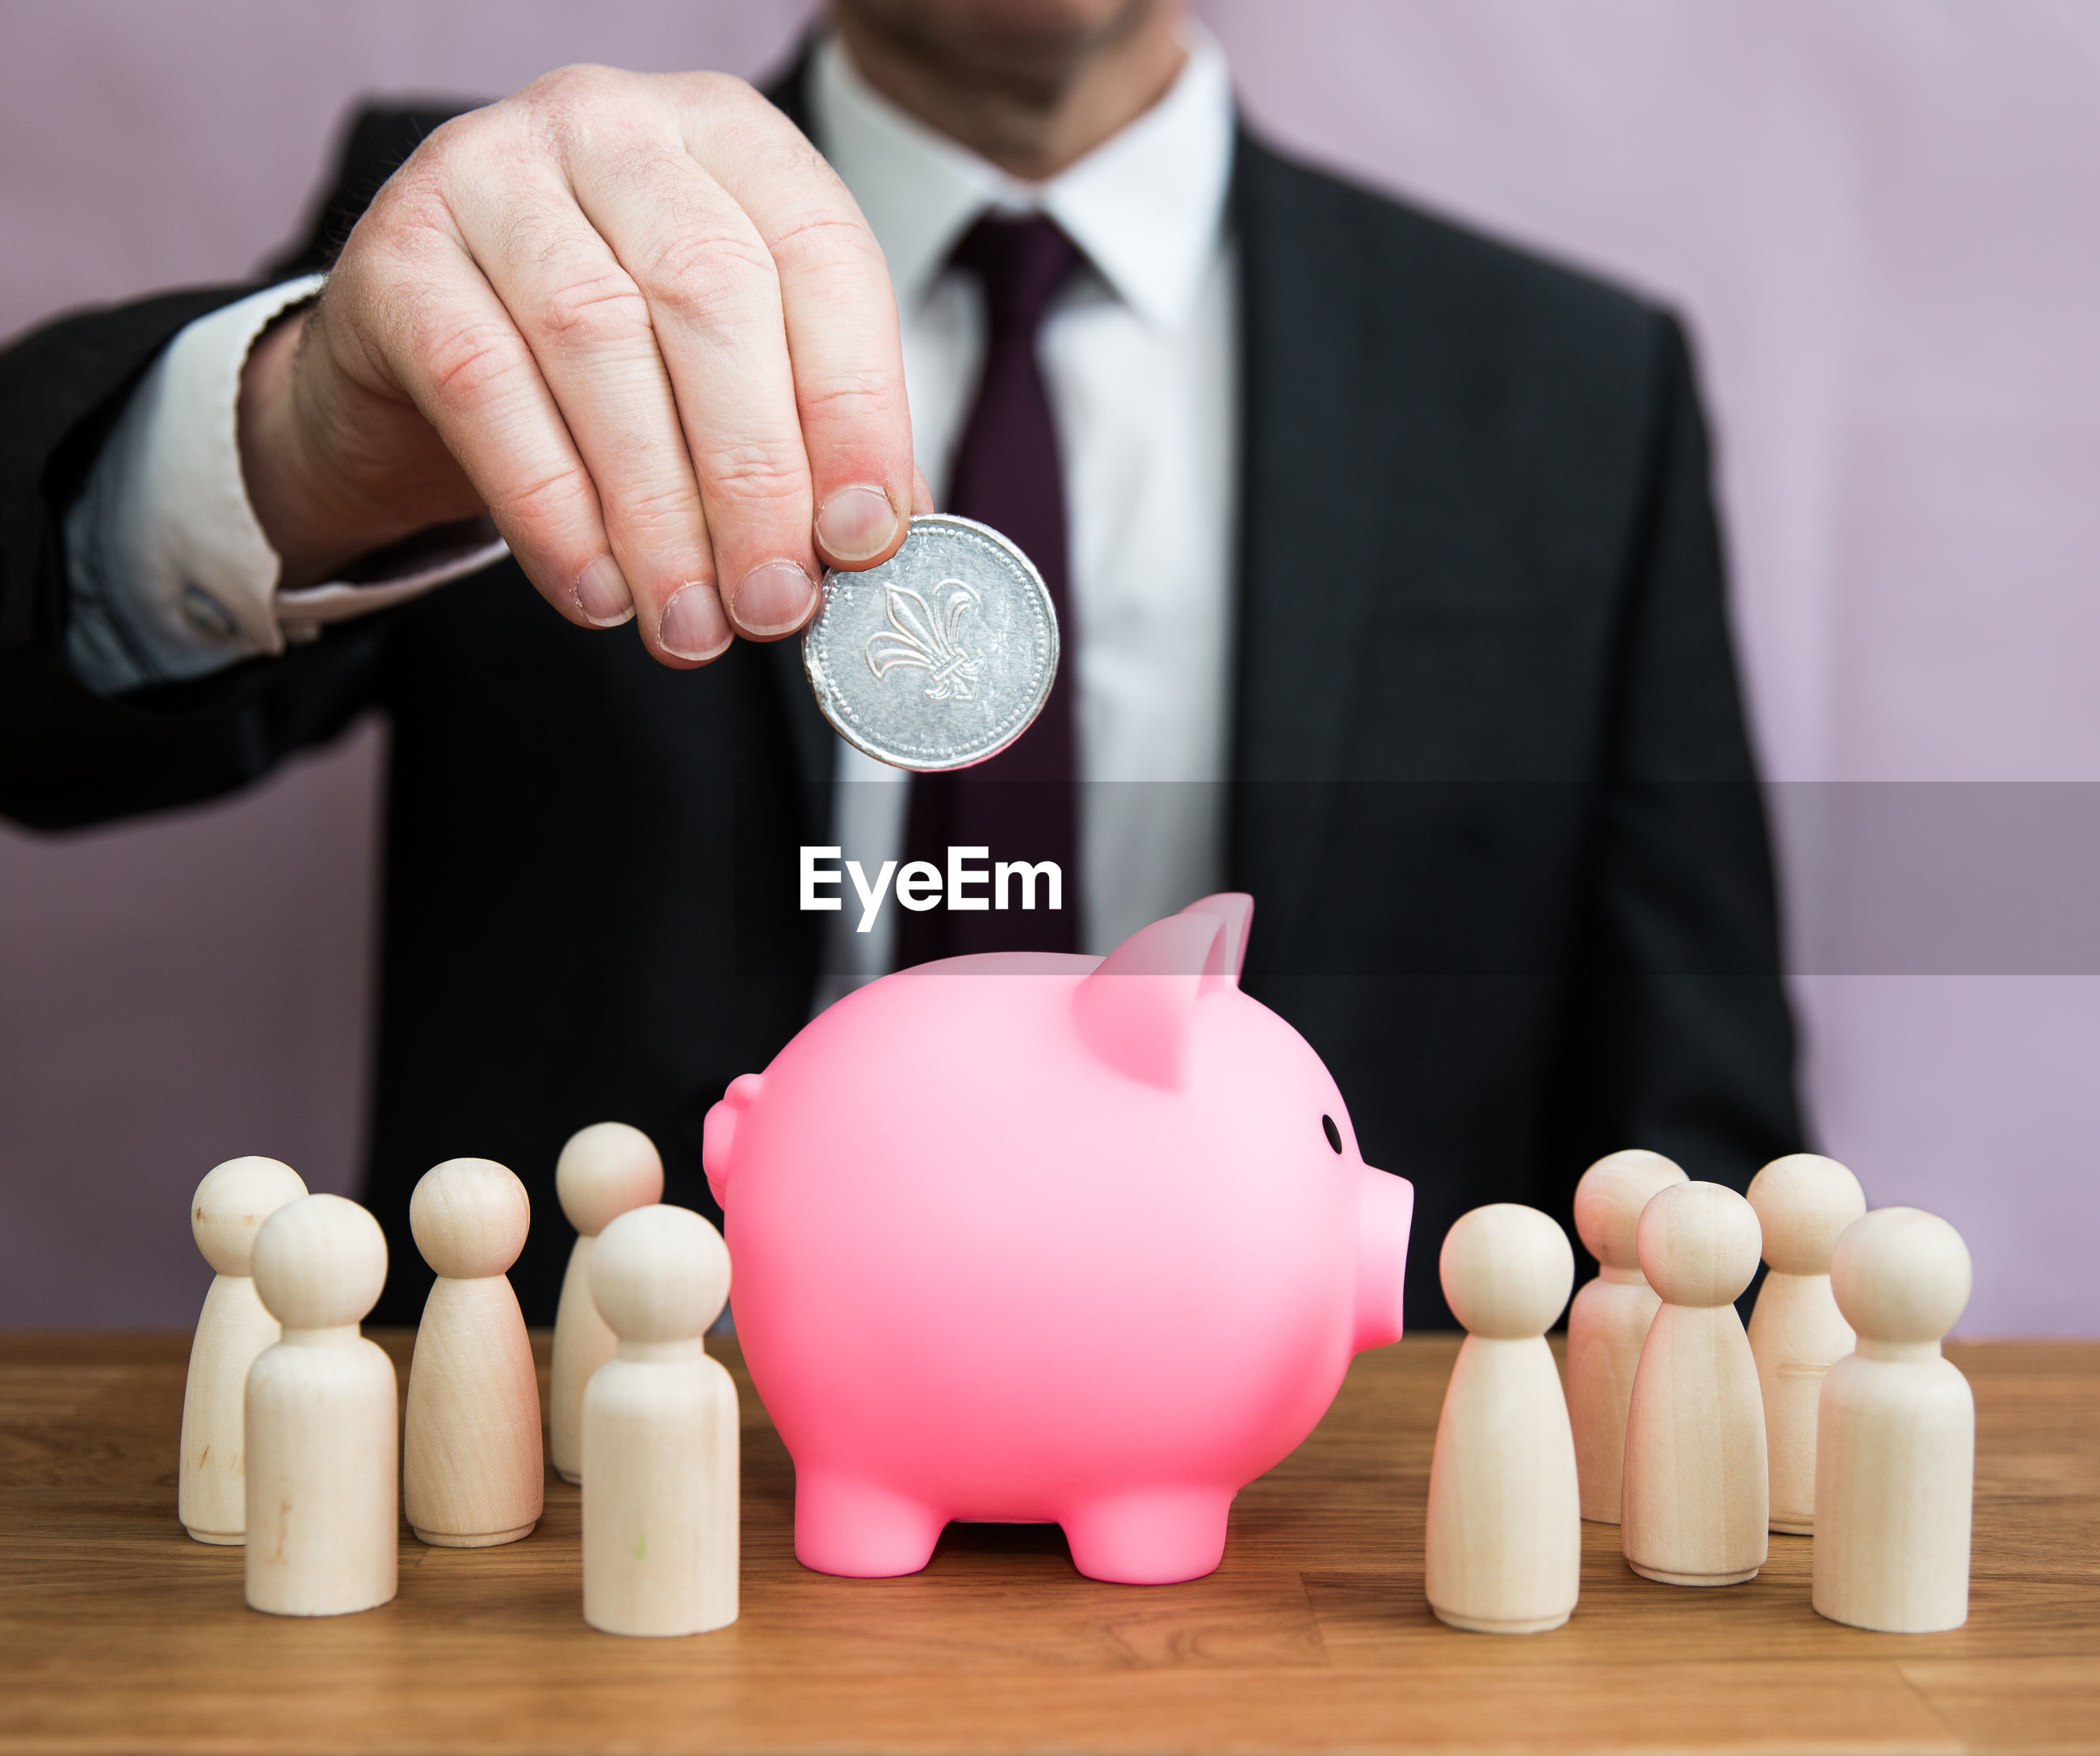 A business concept of a man paying into an employee salary, pension, tax, bonus or incentive scheme